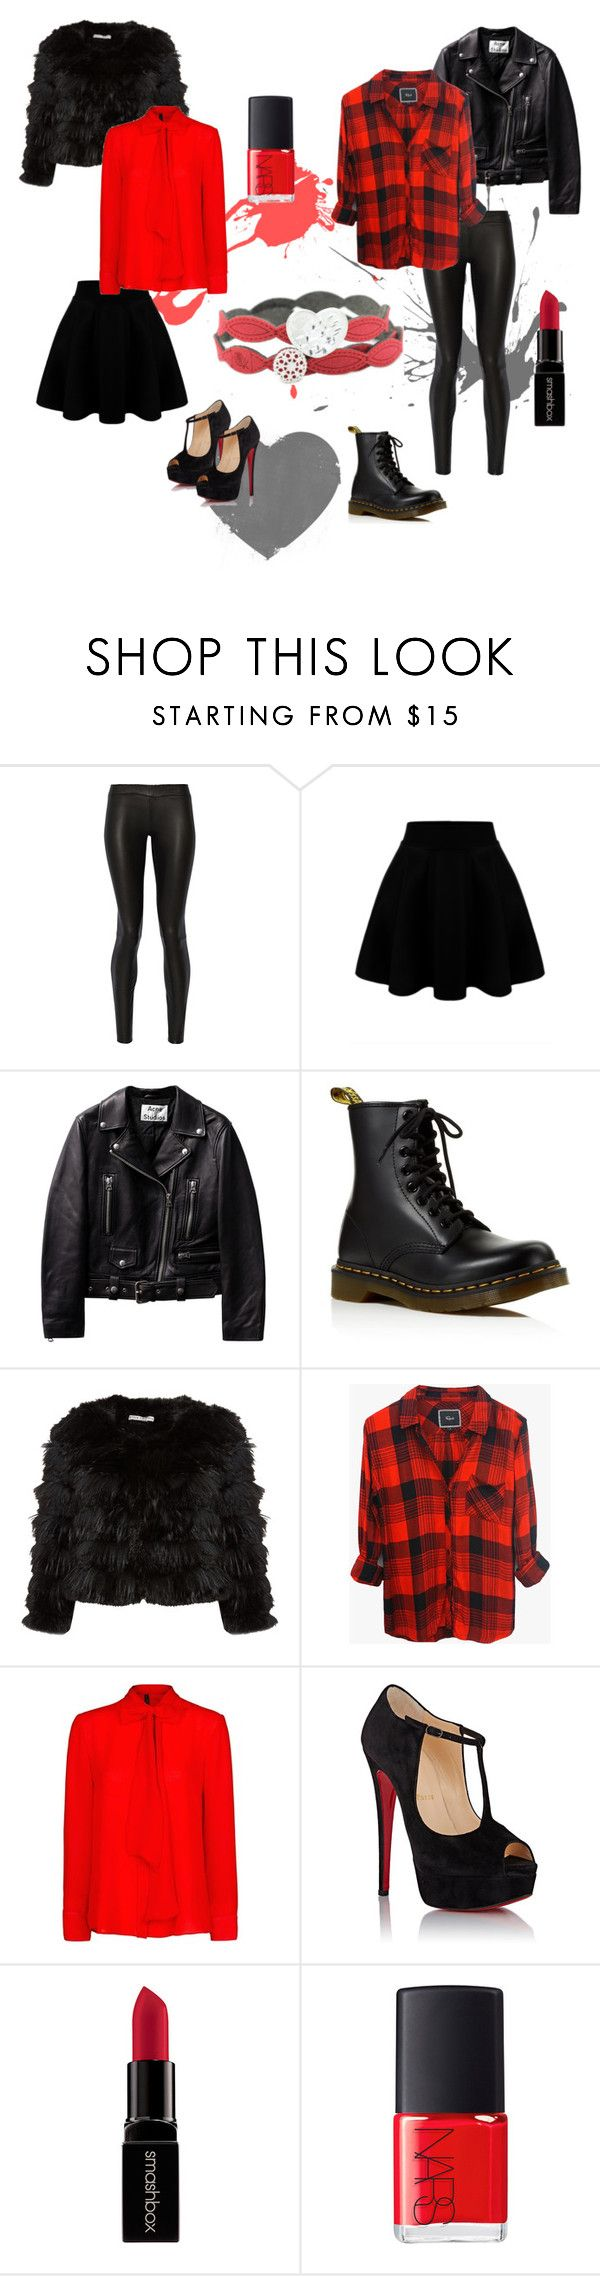 #SanValentine Style by krilajewels on Polyvore featuring Rails, MANGO, Alice + Olivia, The Row, Dr. Martens, Christian Louboutin, Smashbox, NARS Cosmetics, women's clothing and women's fashion